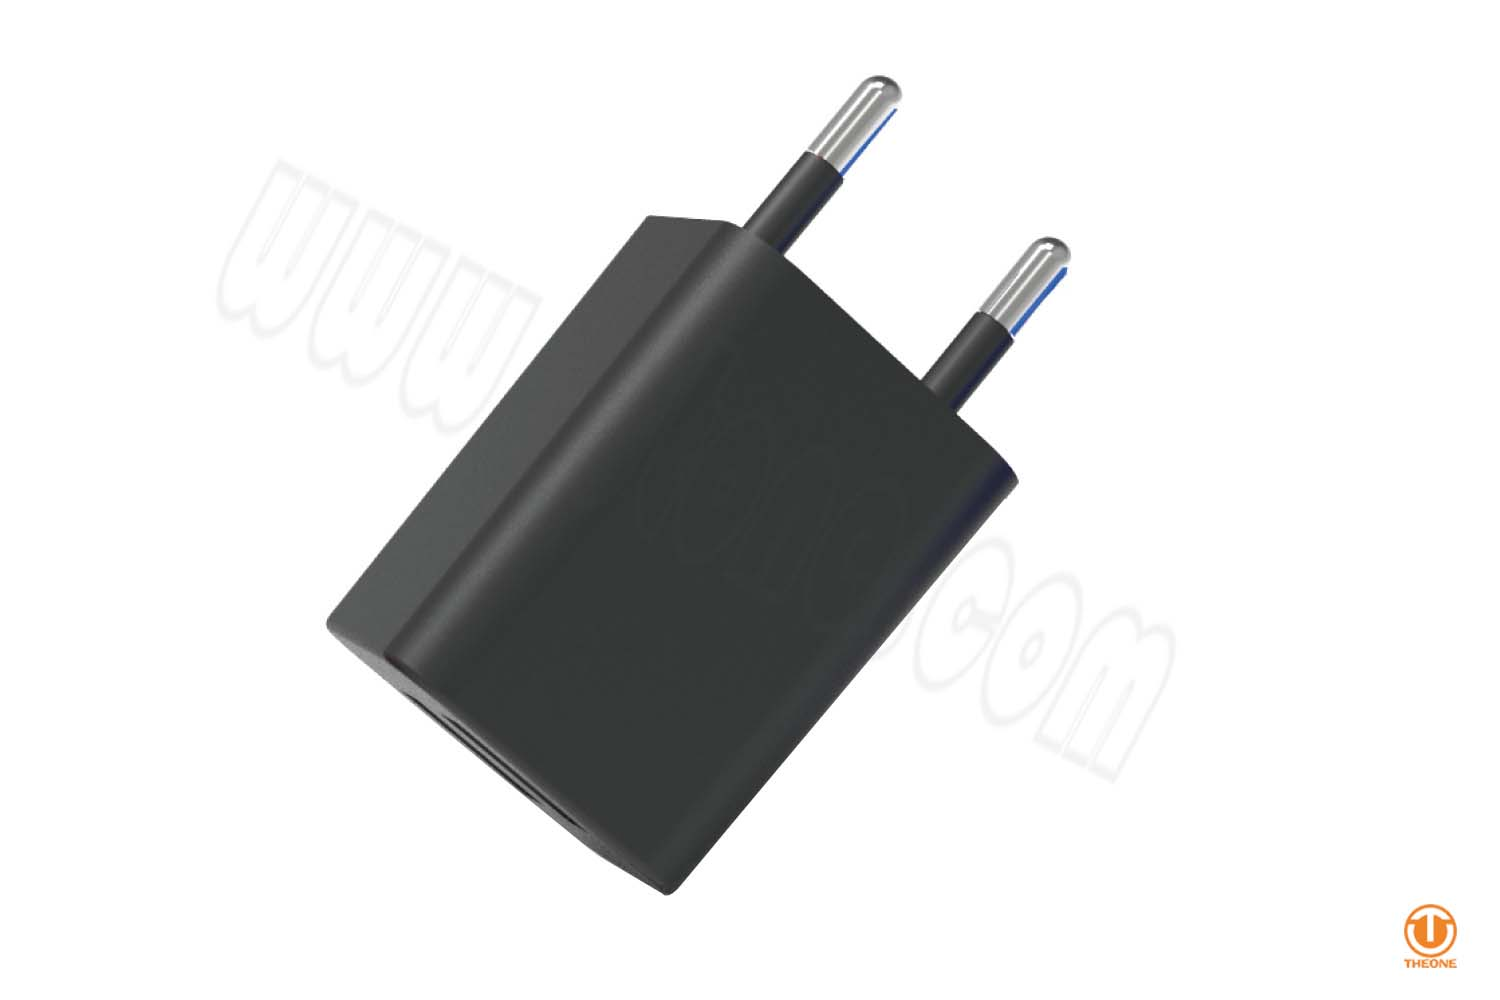 tc03a0-1 dual usb wall charger